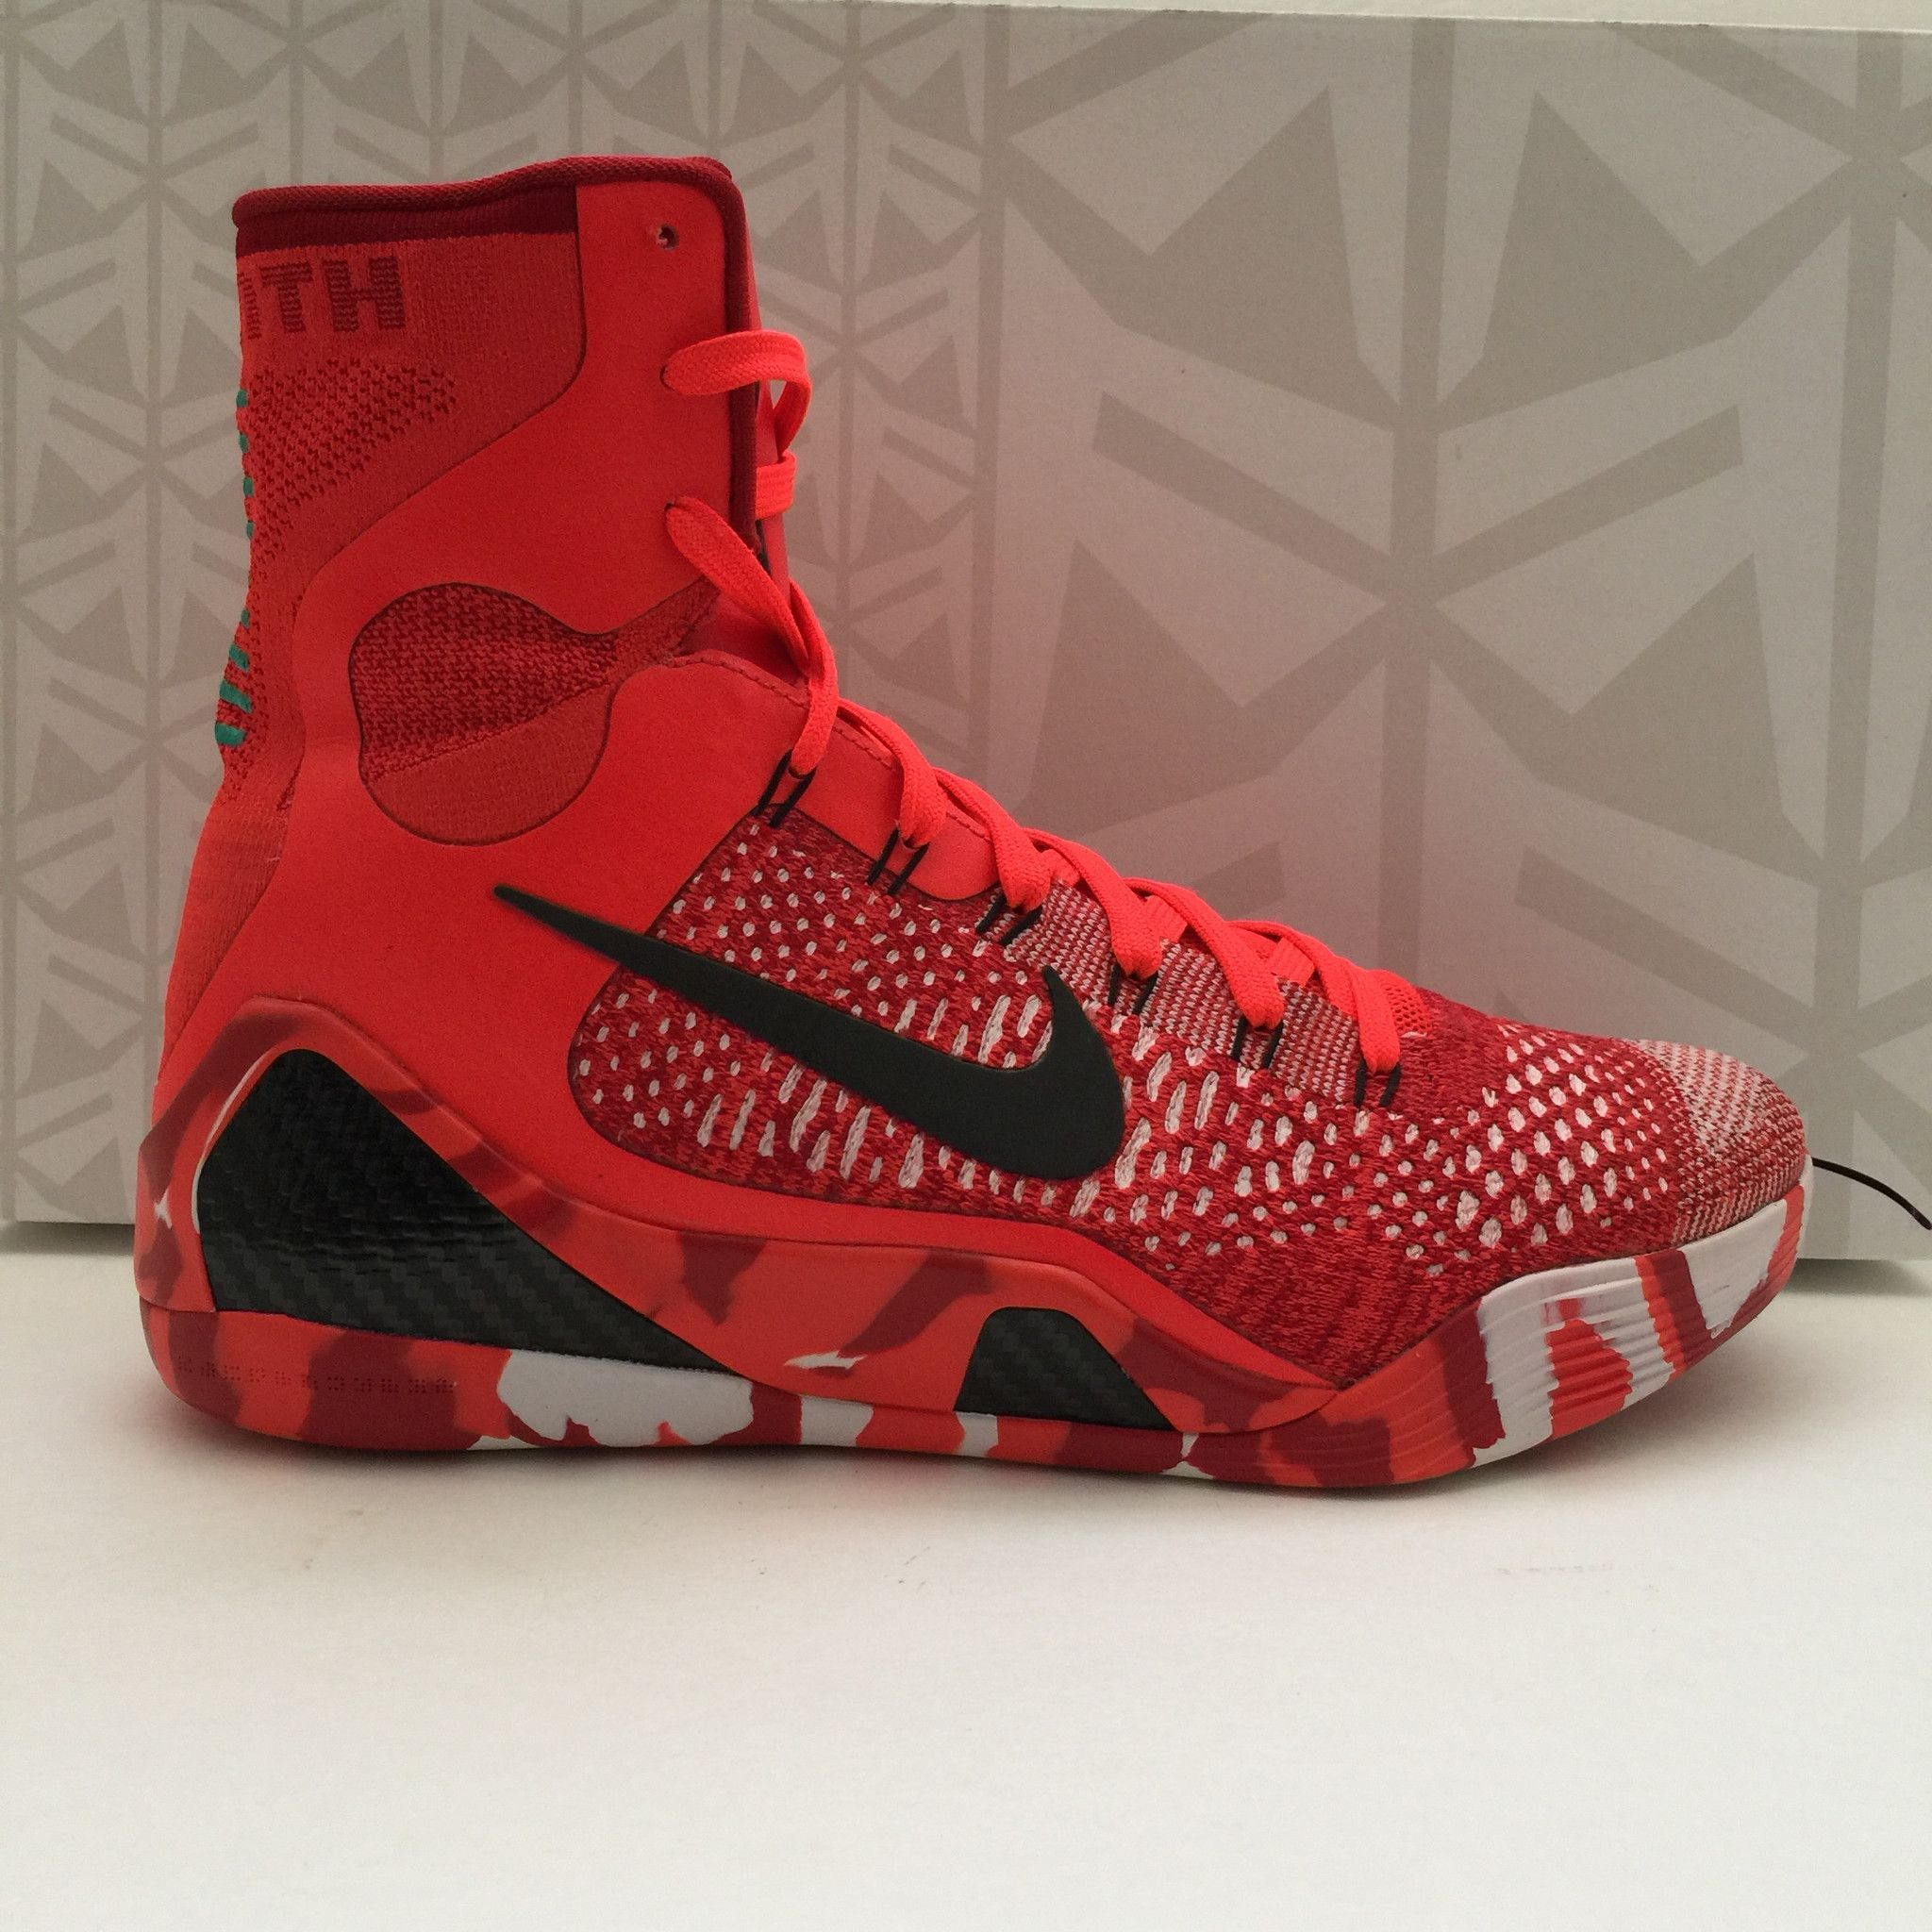 Nike Kobe 9 IX Elite Christmas Size 10 | Products | Pinterest | Kobe ...